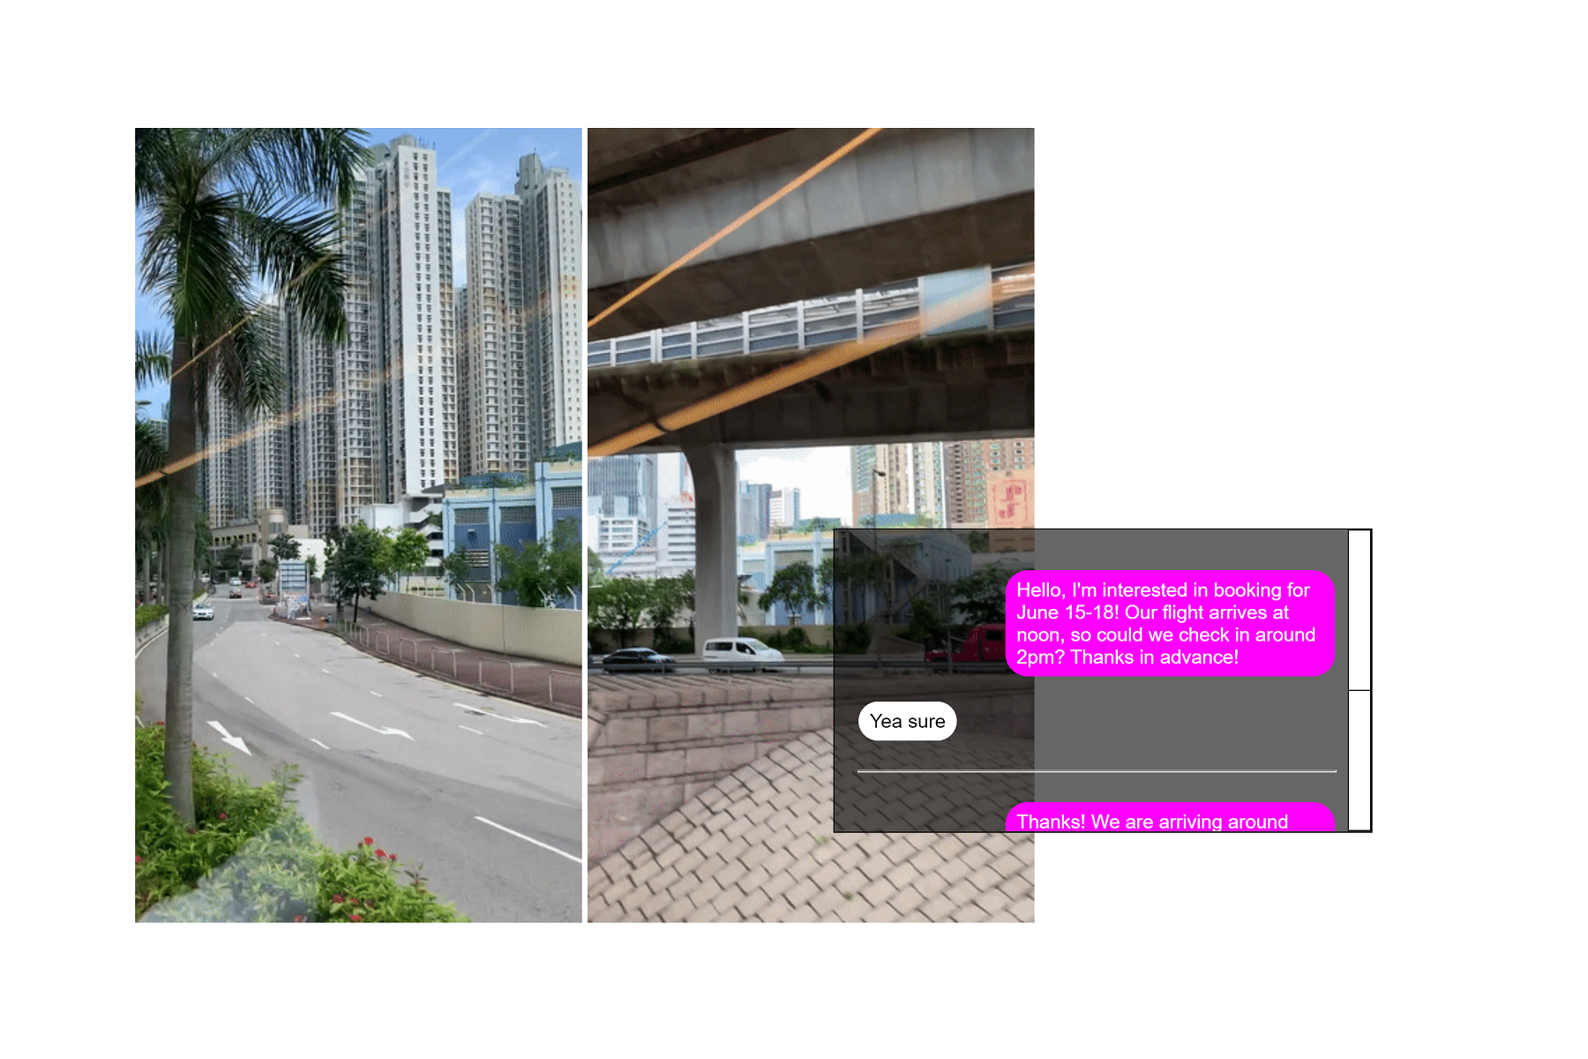 Screenshot of webzine: two side-by-side portrait-orientation images of cityscapes, overlapped by a rectangle containing a recreated text message conversation, all against a white background.